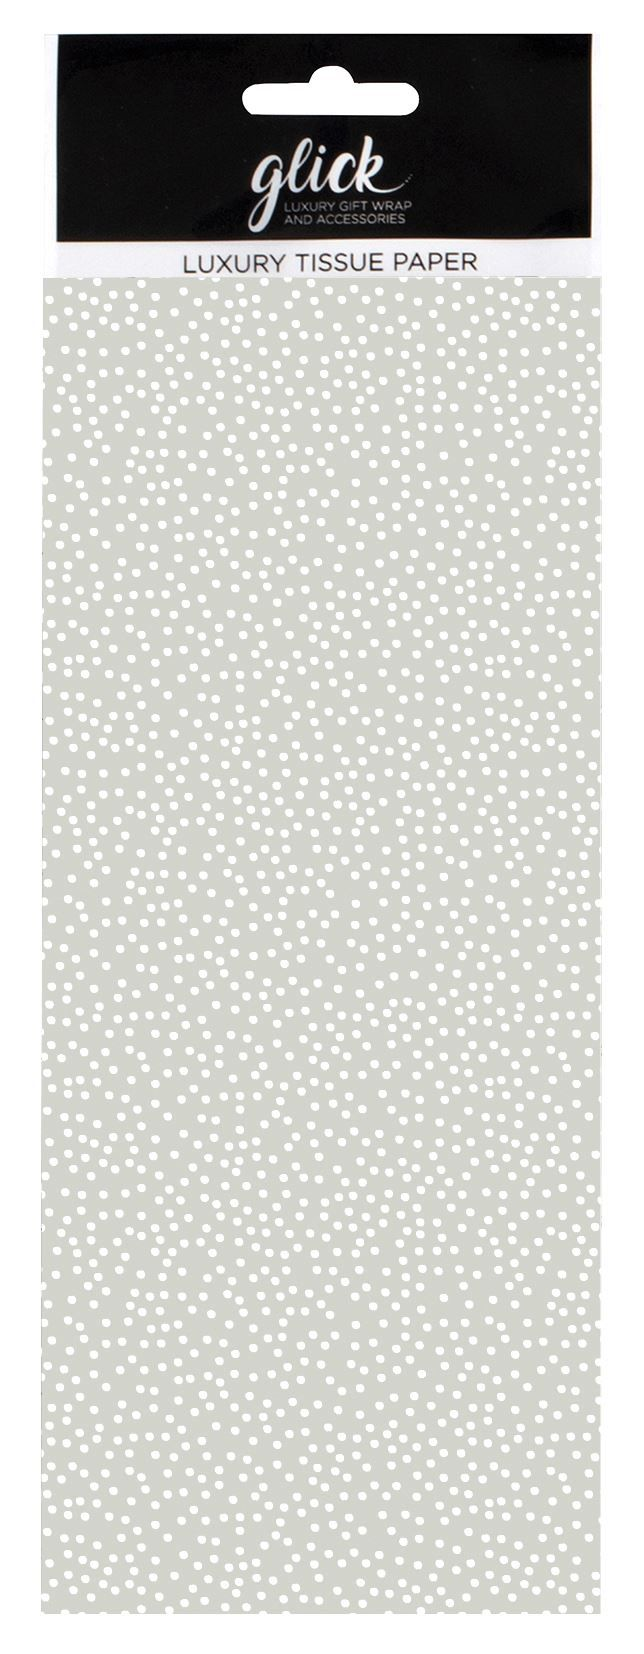 Grey & White Polka Dot Print Luxury Tissue Paper - Pack Of 4 LARGE Sheets -